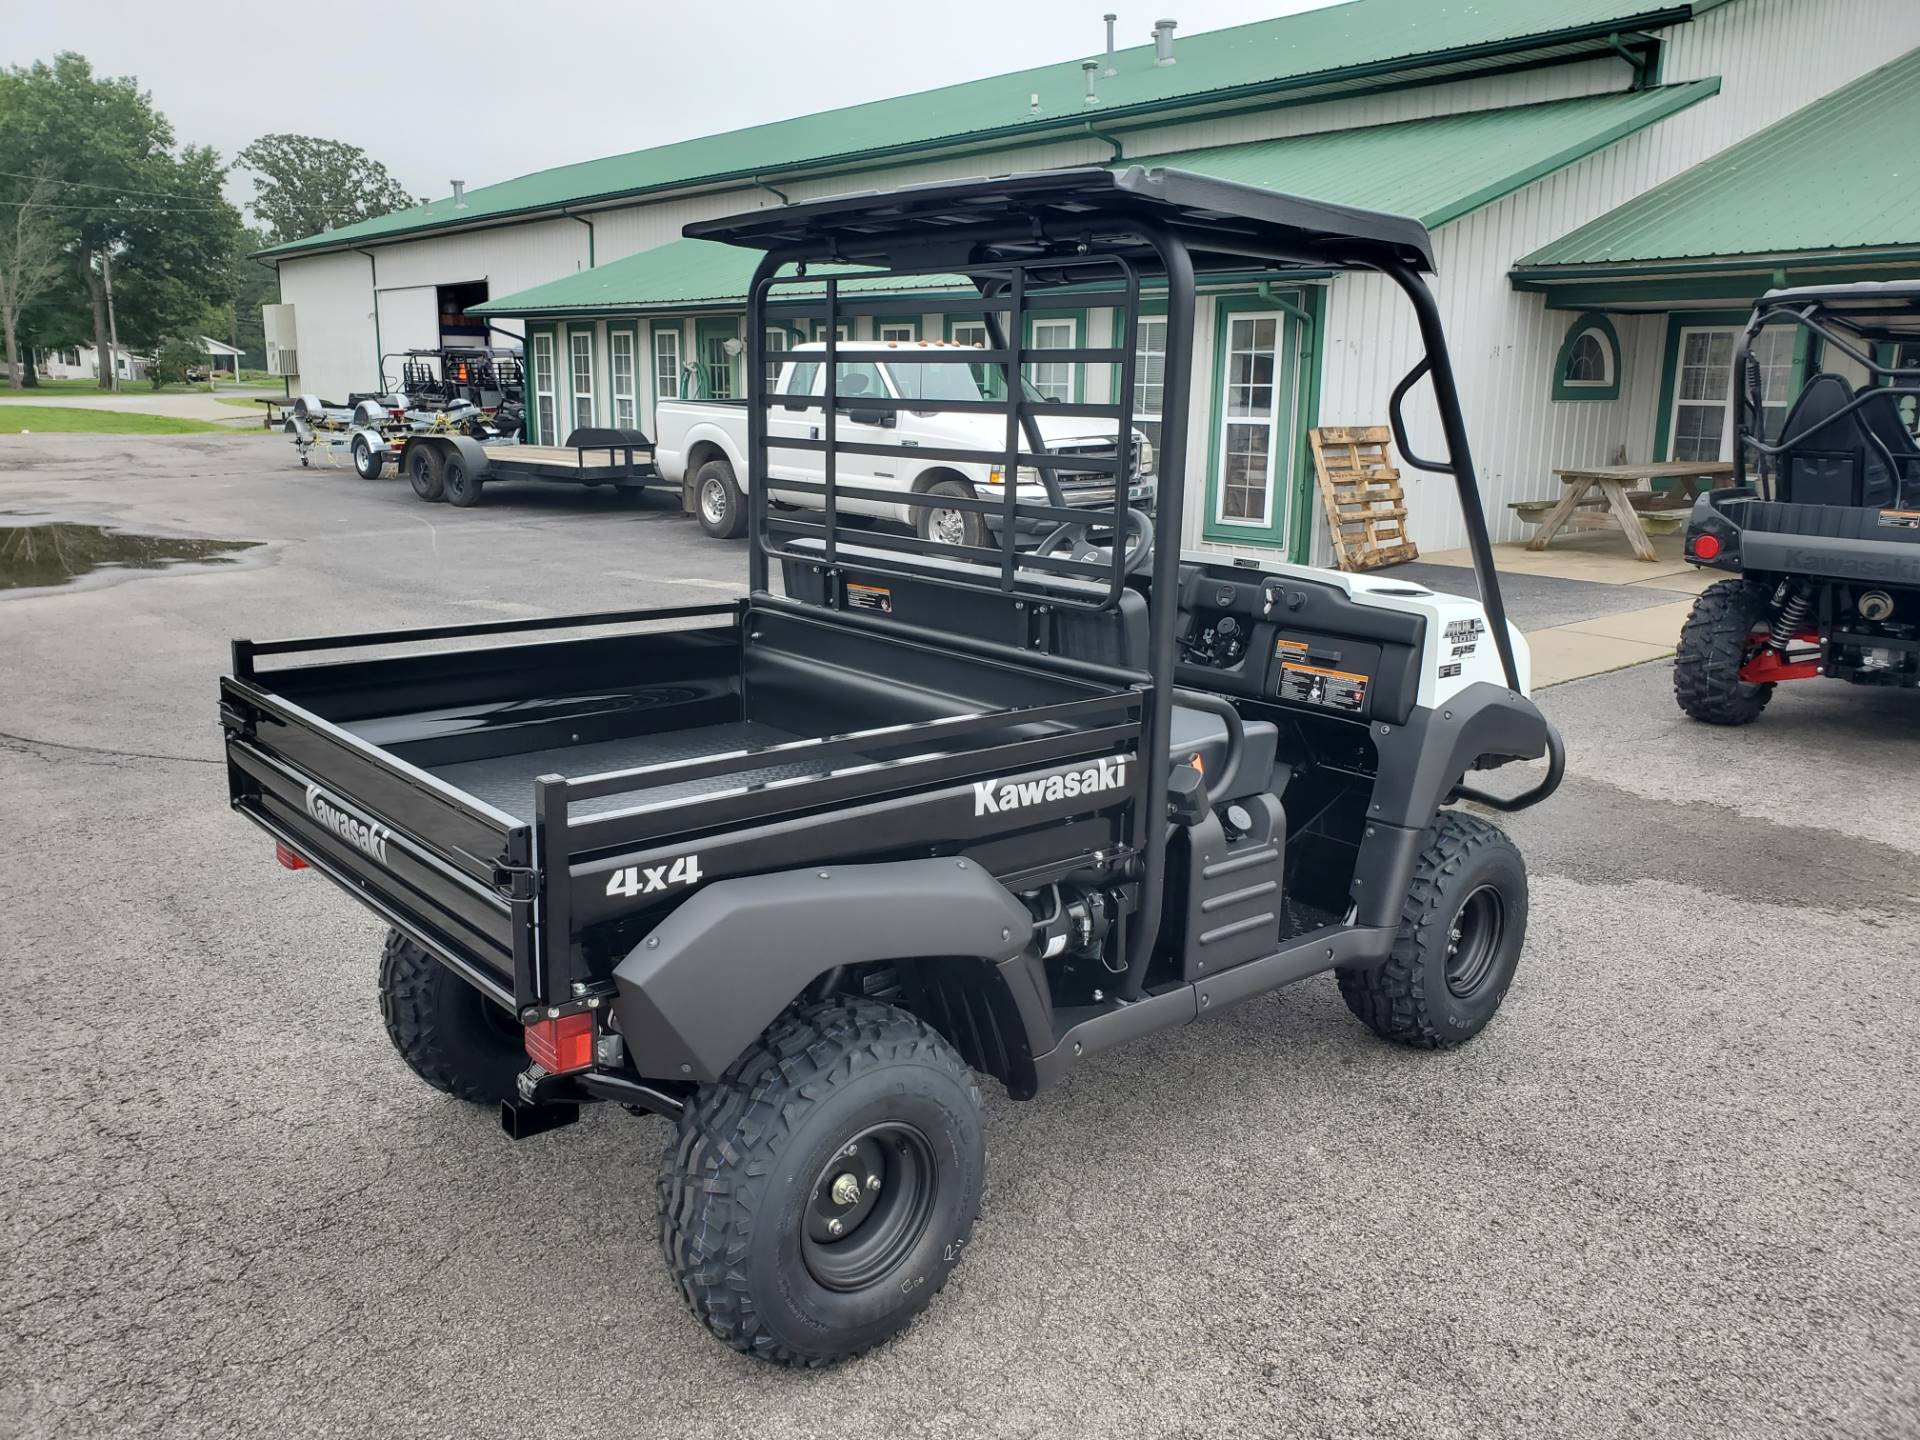 2021 Kawasaki Mule 4010 4x4 FE in Herrin, Illinois - Photo 5